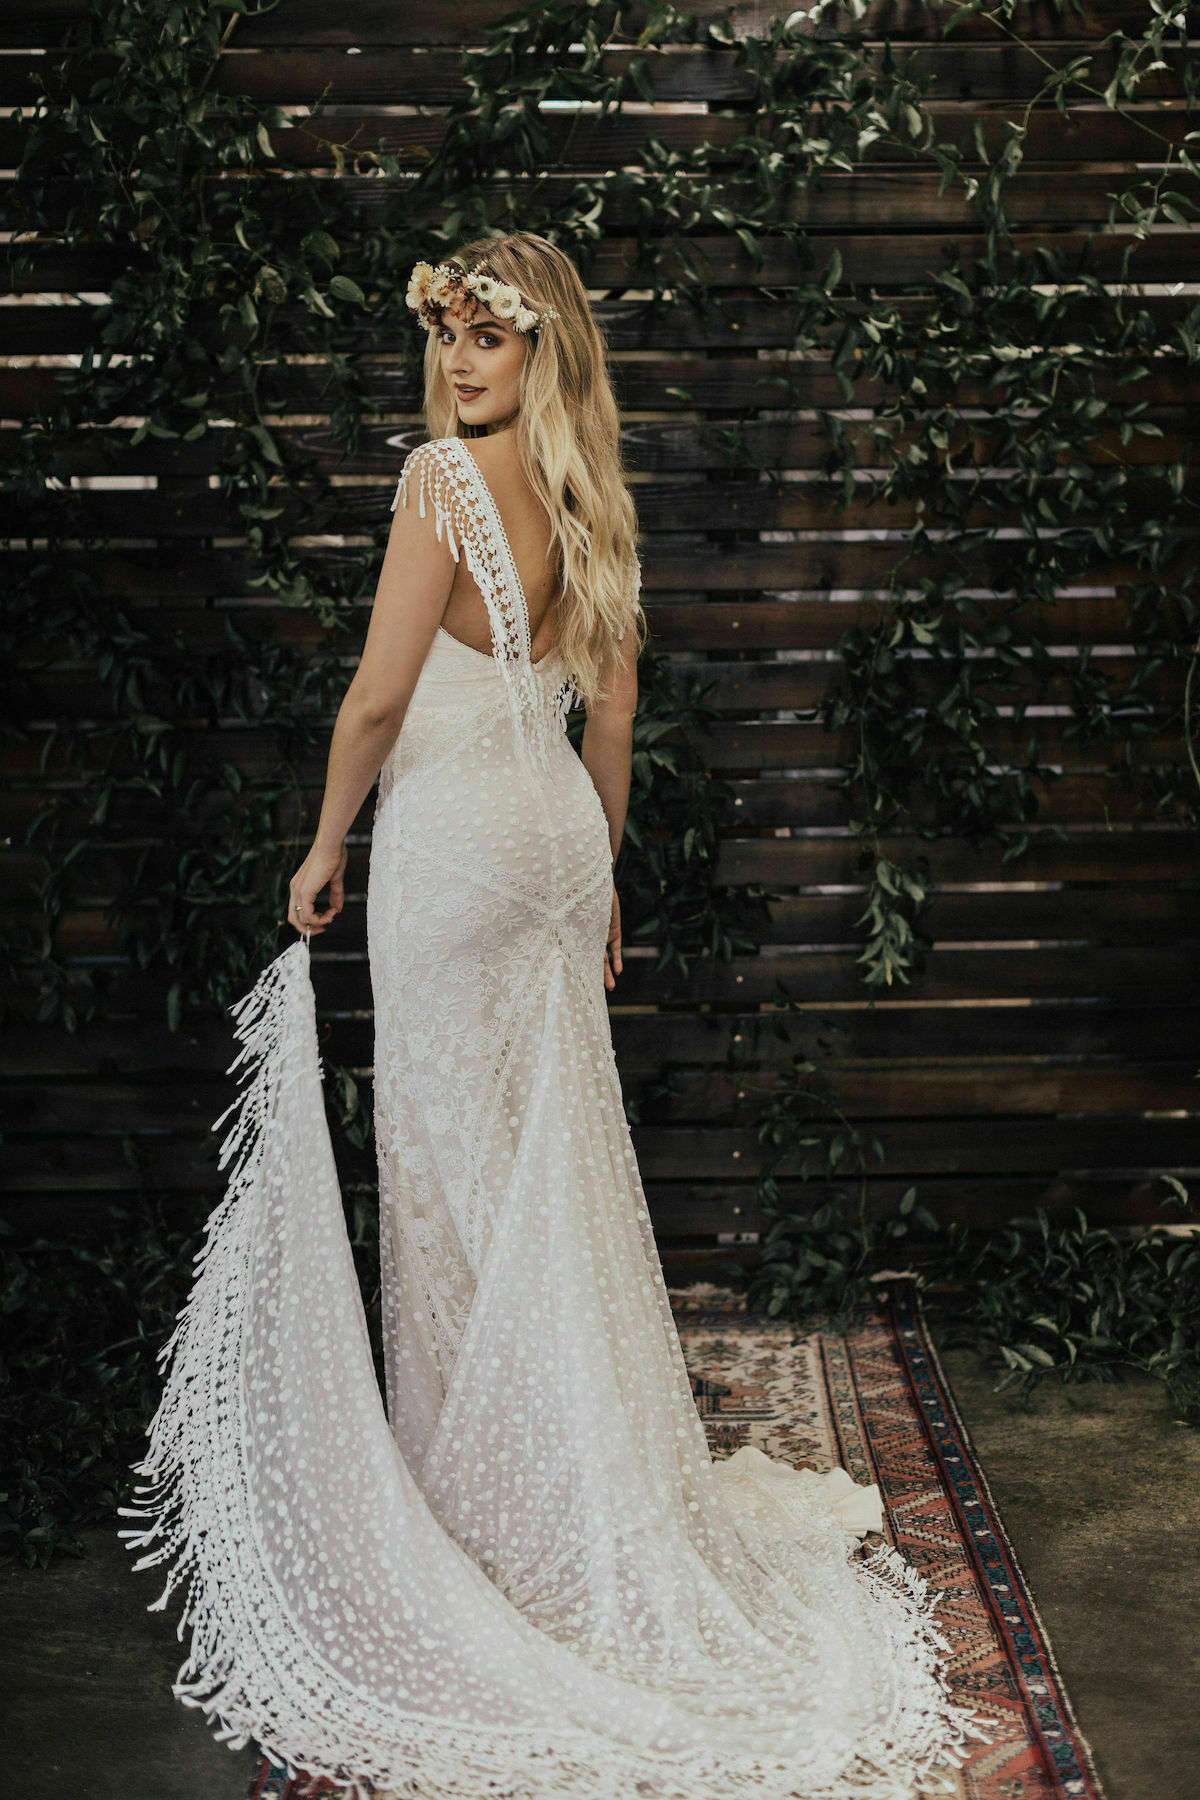 Dreamers-and-Lovers-Jenny-Fringe-Floral-Dotted-Multidimensional-Boho-ace-Wedding-Dress